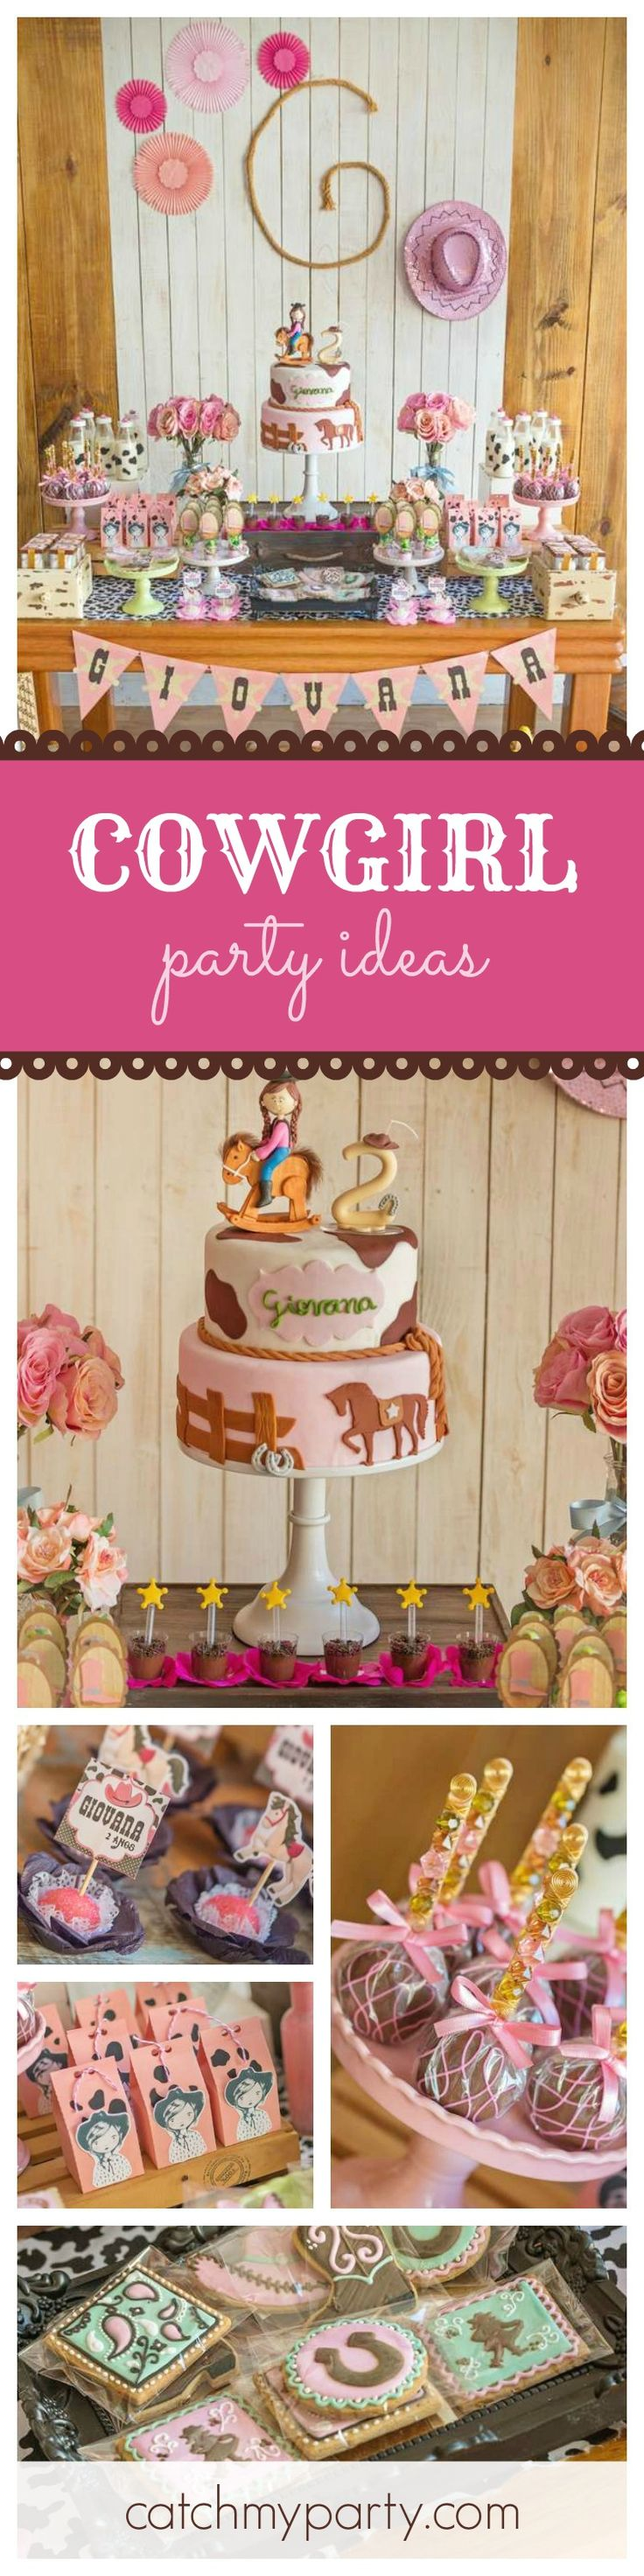 Yeehaw!! This Cowgirl Birthday Party is so much fun! The cookies and birthday cake are so cute! See more party ideas at CatchMyParty.com